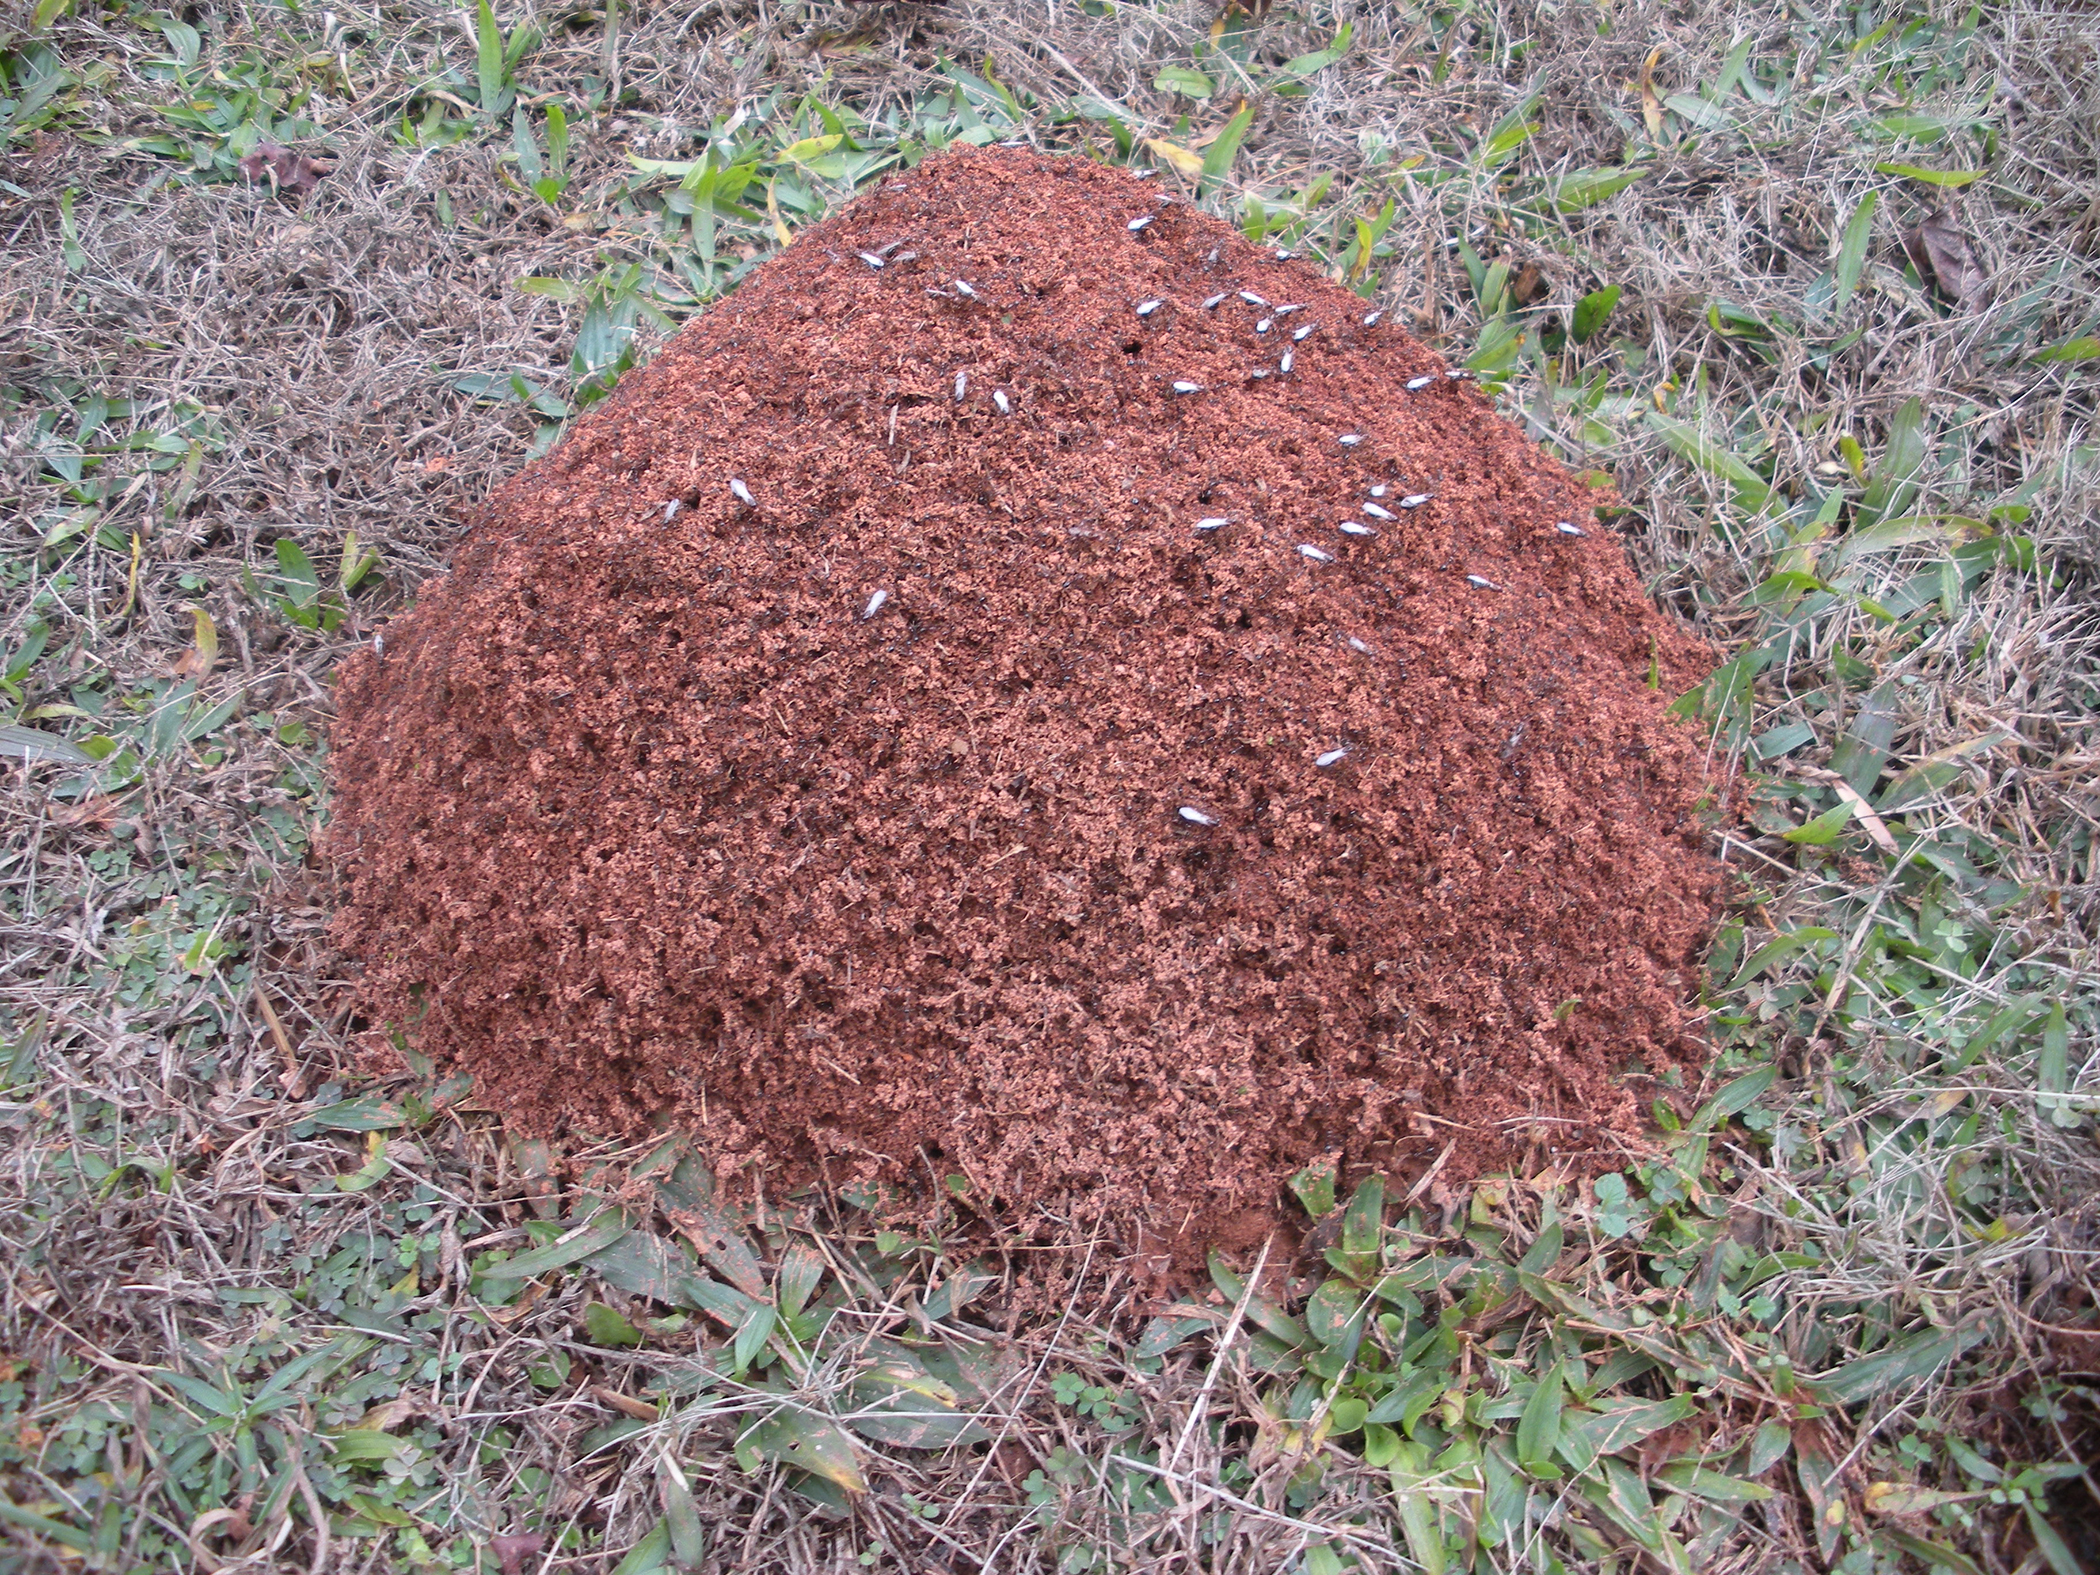 Researchers compared the supergene's impact on the fire ants' two primary types of social structures: monogyne, which is reproduction from queens that form a new nest, and pologyne, reproduction from queens that join an existing nest.